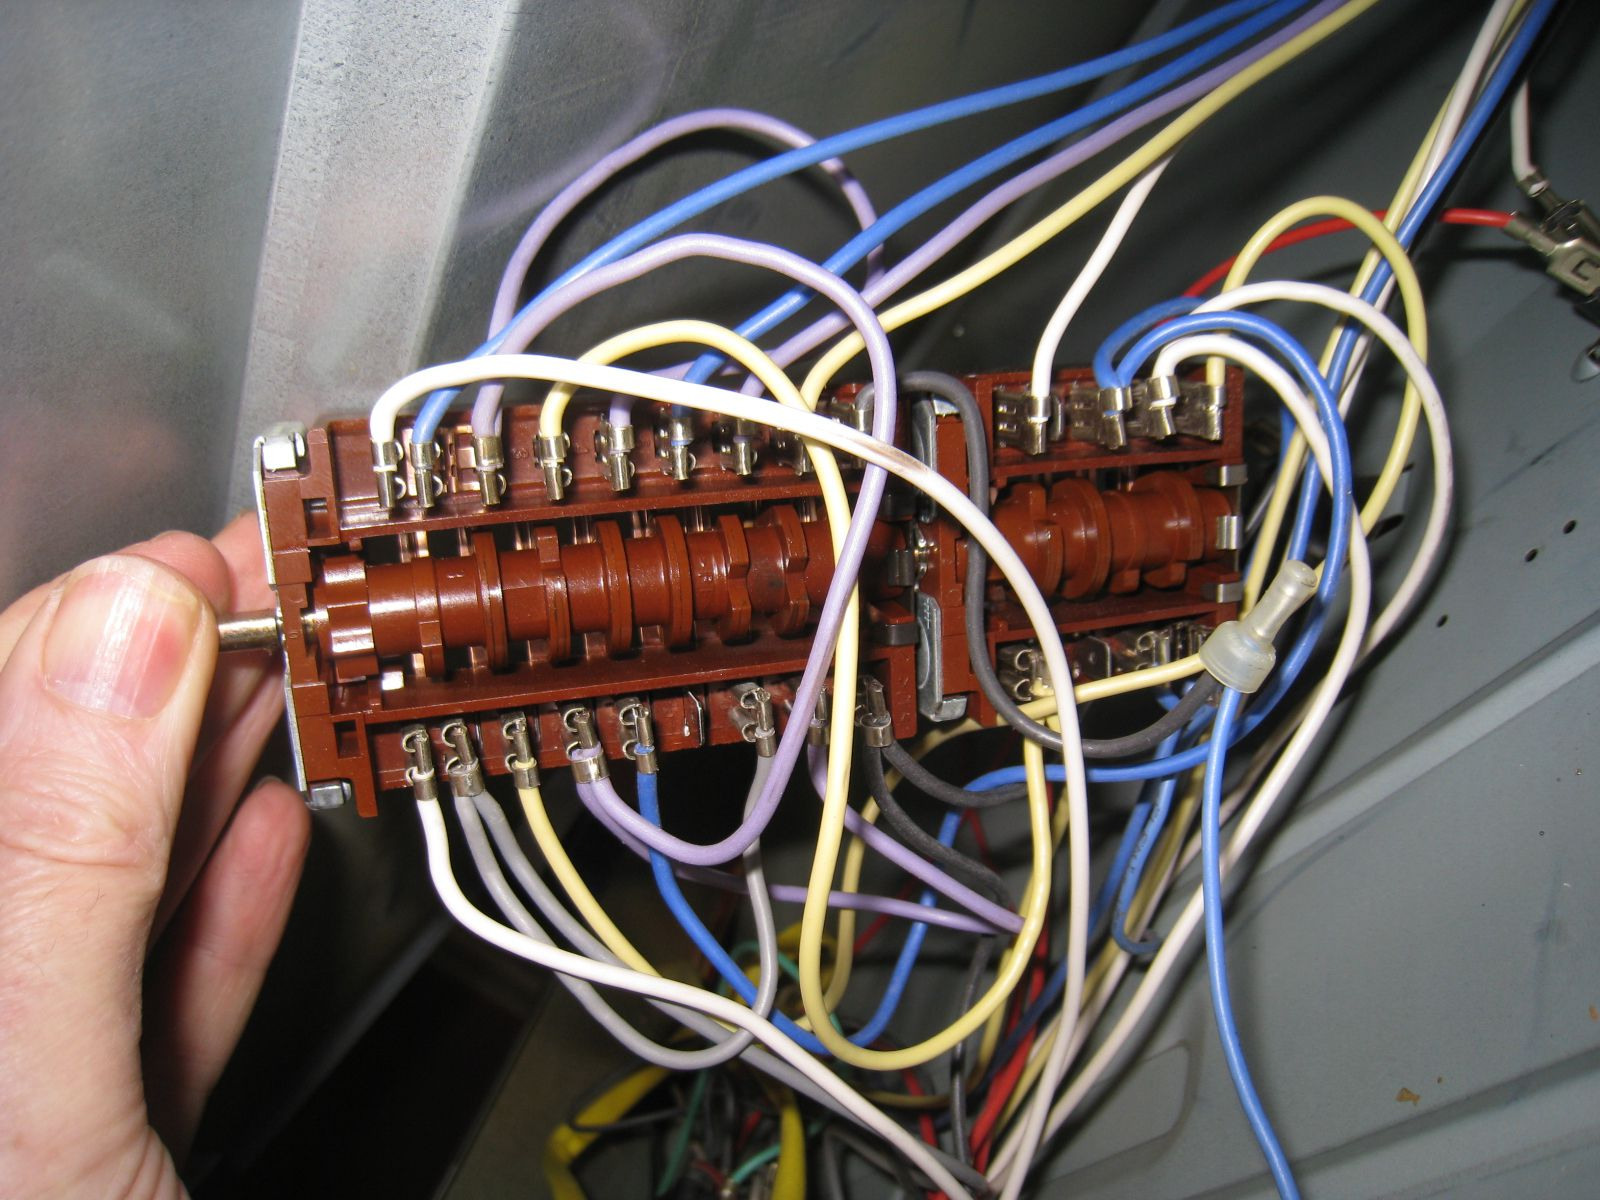 hight resolution of picture of my hotpoint bd52 large oven selector switch with its wiring